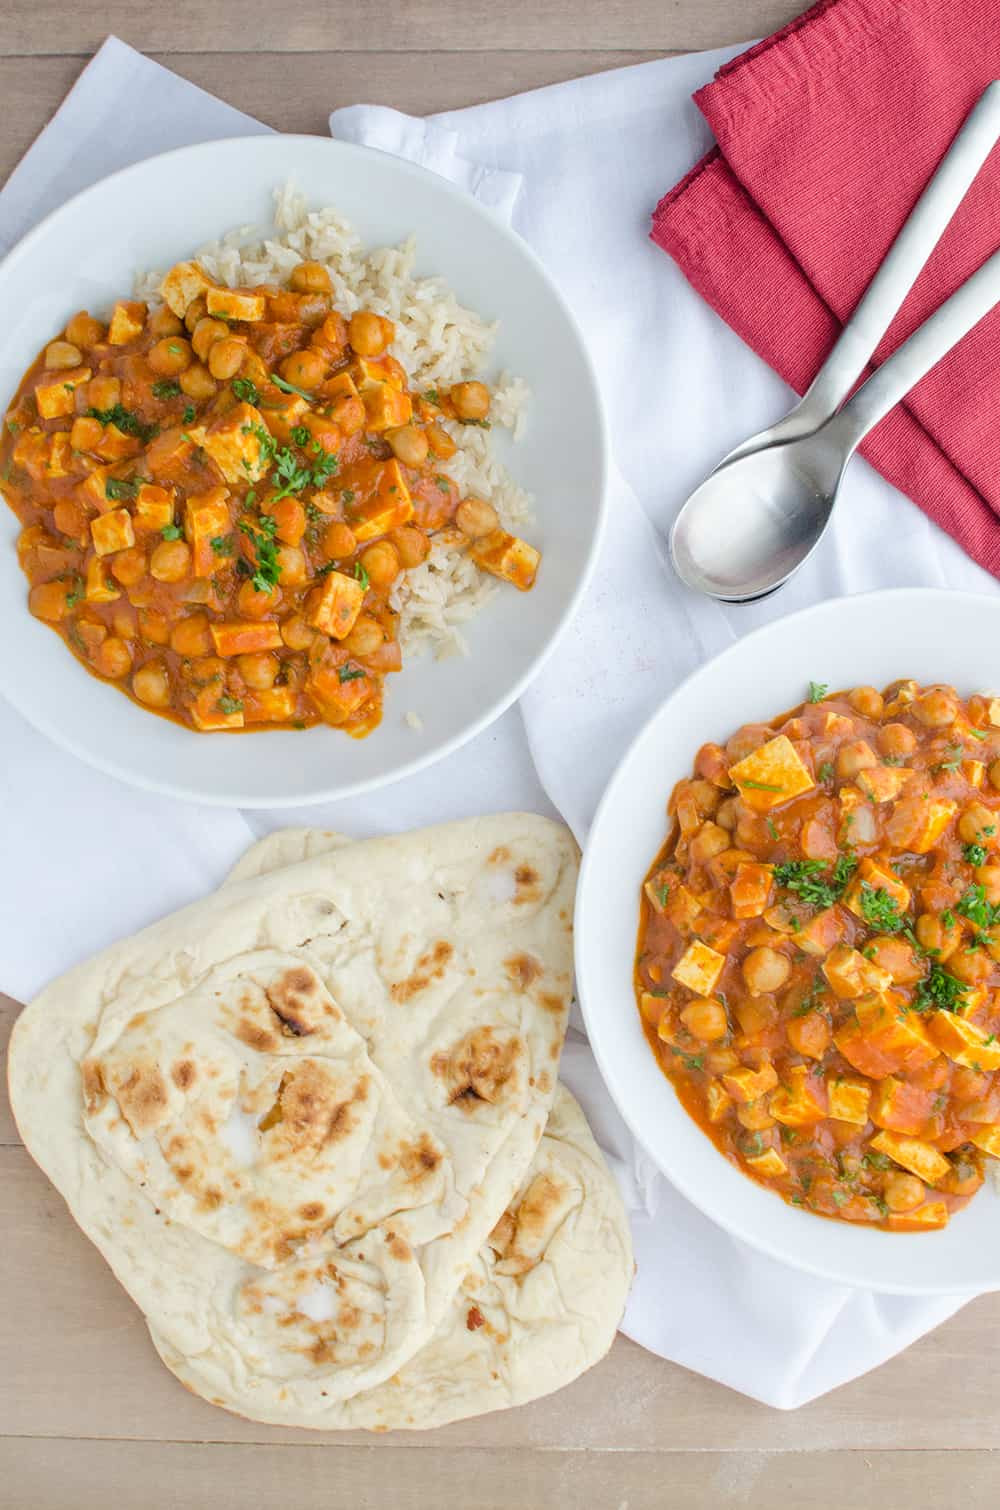 Slow Cooker Indian Vegetarian Recipes  Slow Cooker Butter Chickpeas Video Delish Knowledge